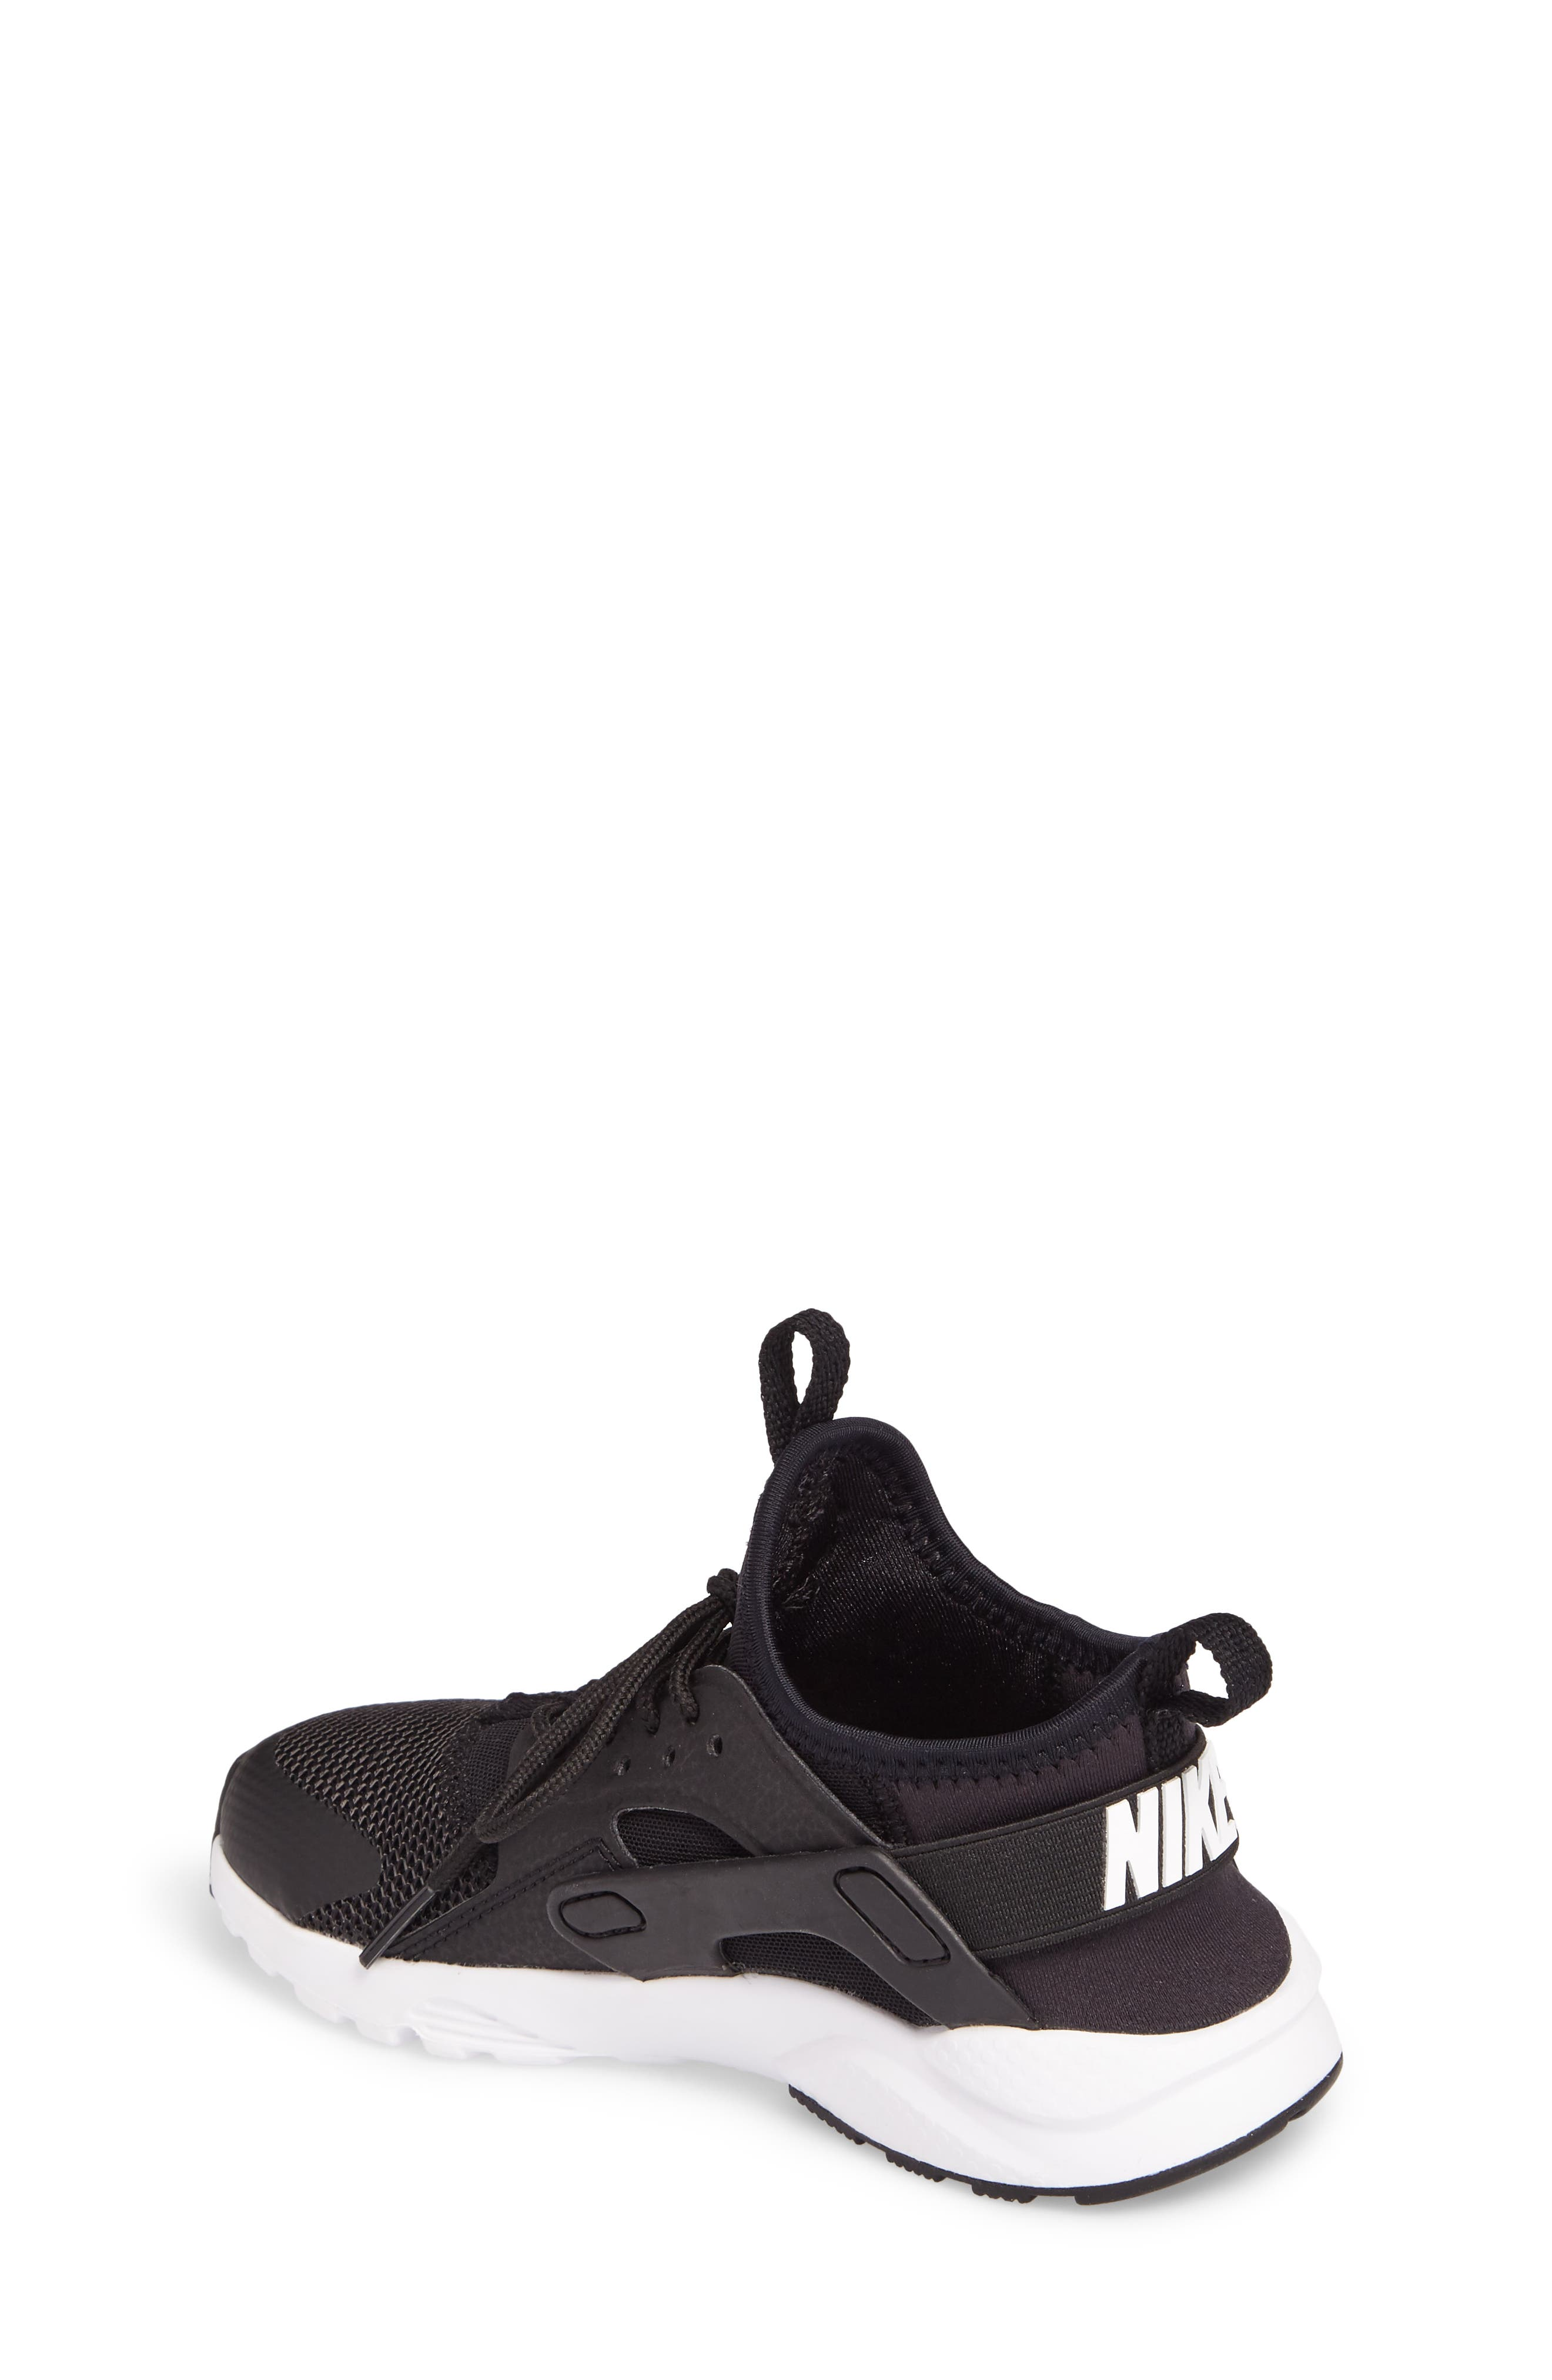 Air Huarache Run Ultra Sneaker,                             Alternate thumbnail 8, color,